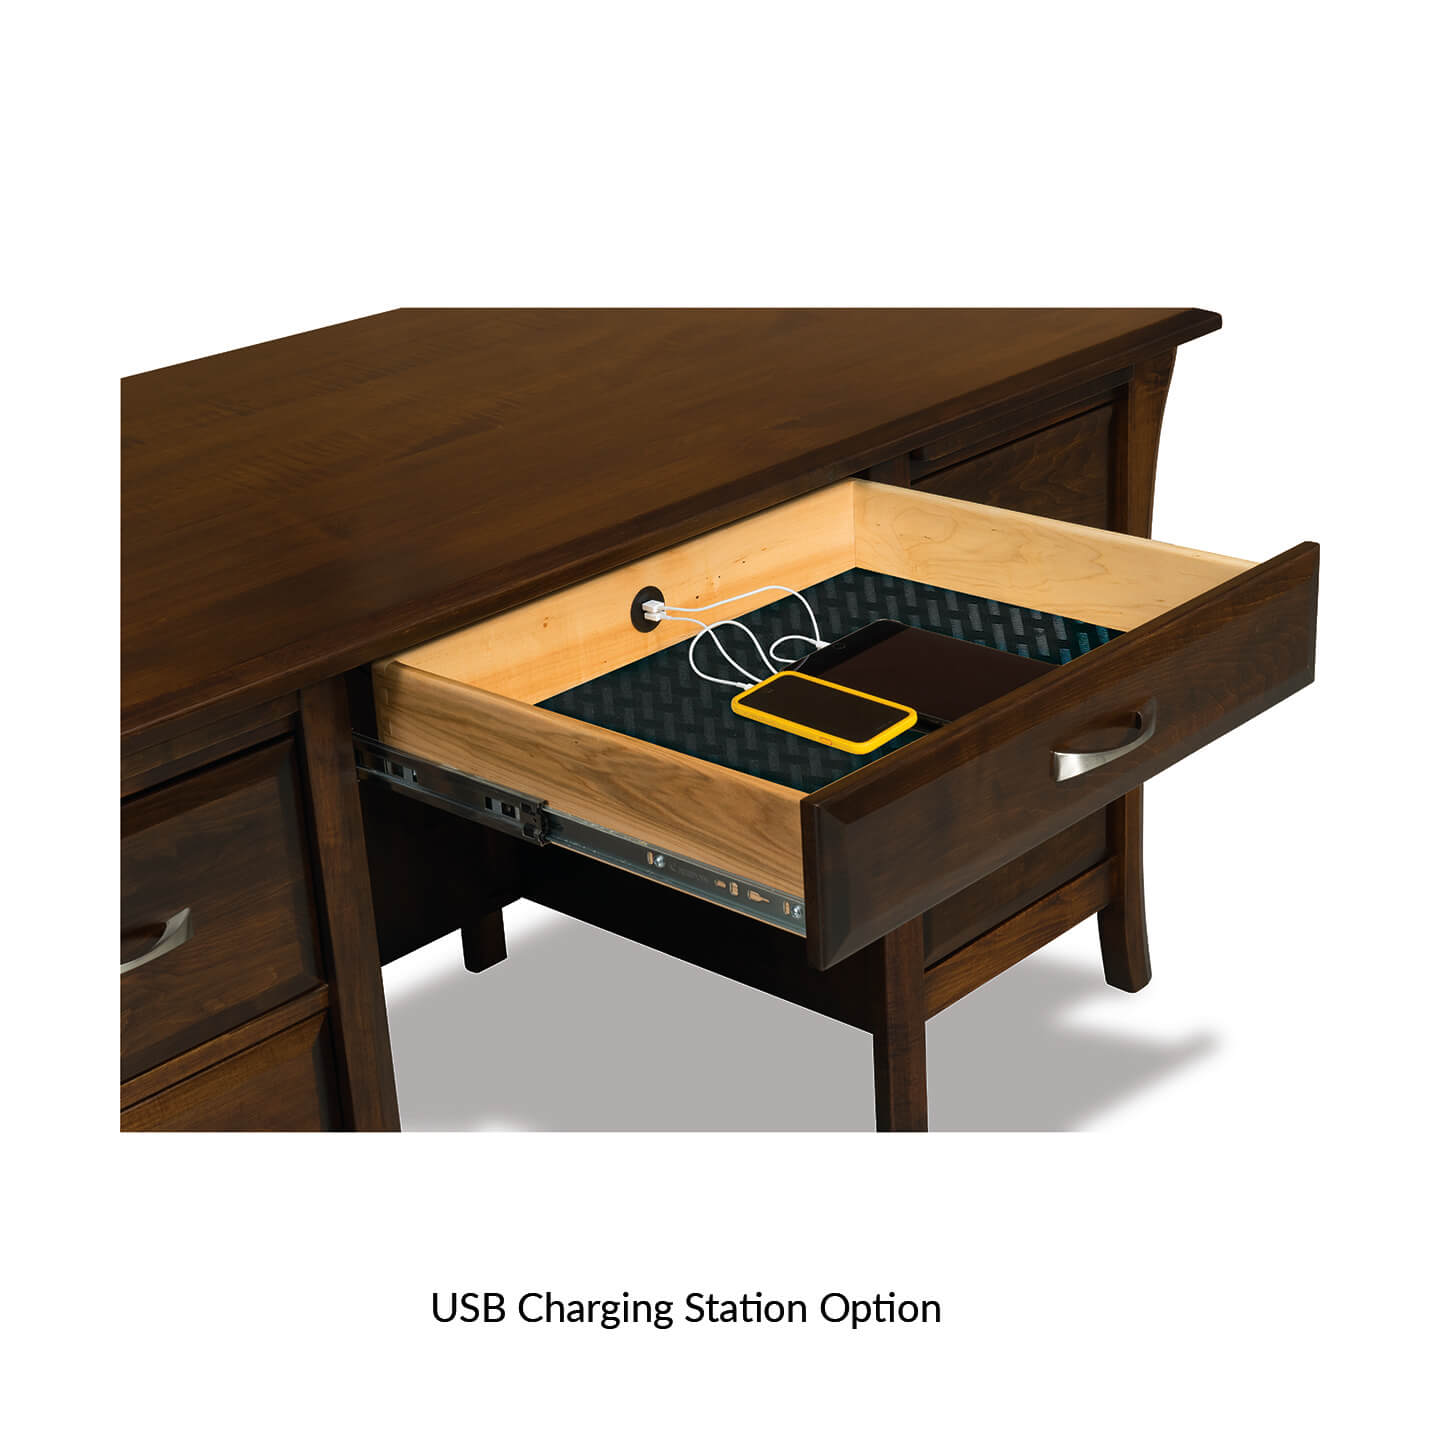 7.2-usb-charging-station-option.jpg